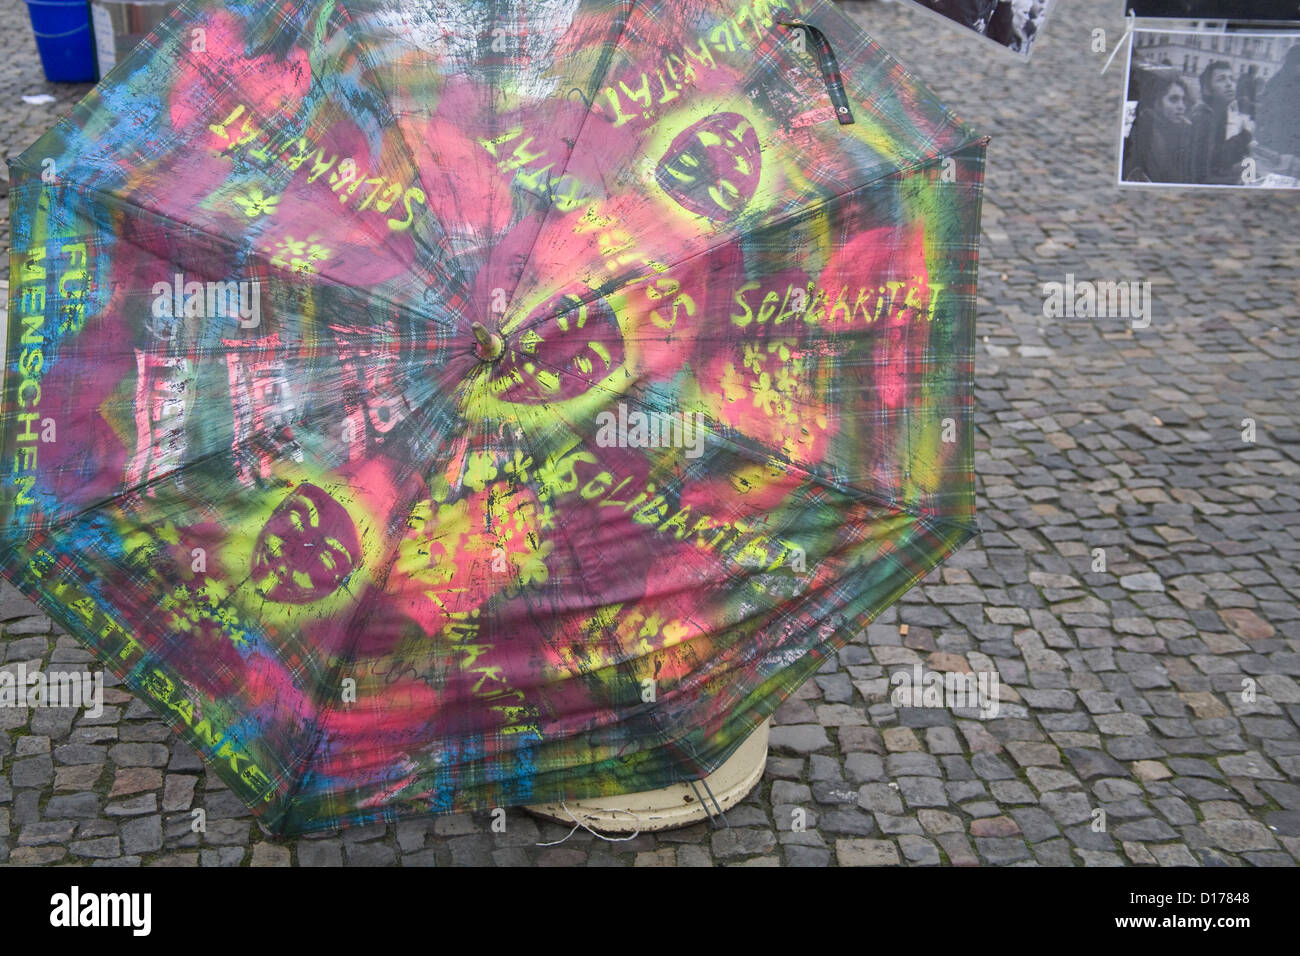 Berlin Germany EU Colourful umbrella with slogans painted as protest at deportation of Iranian asylum seekers - Stock Image